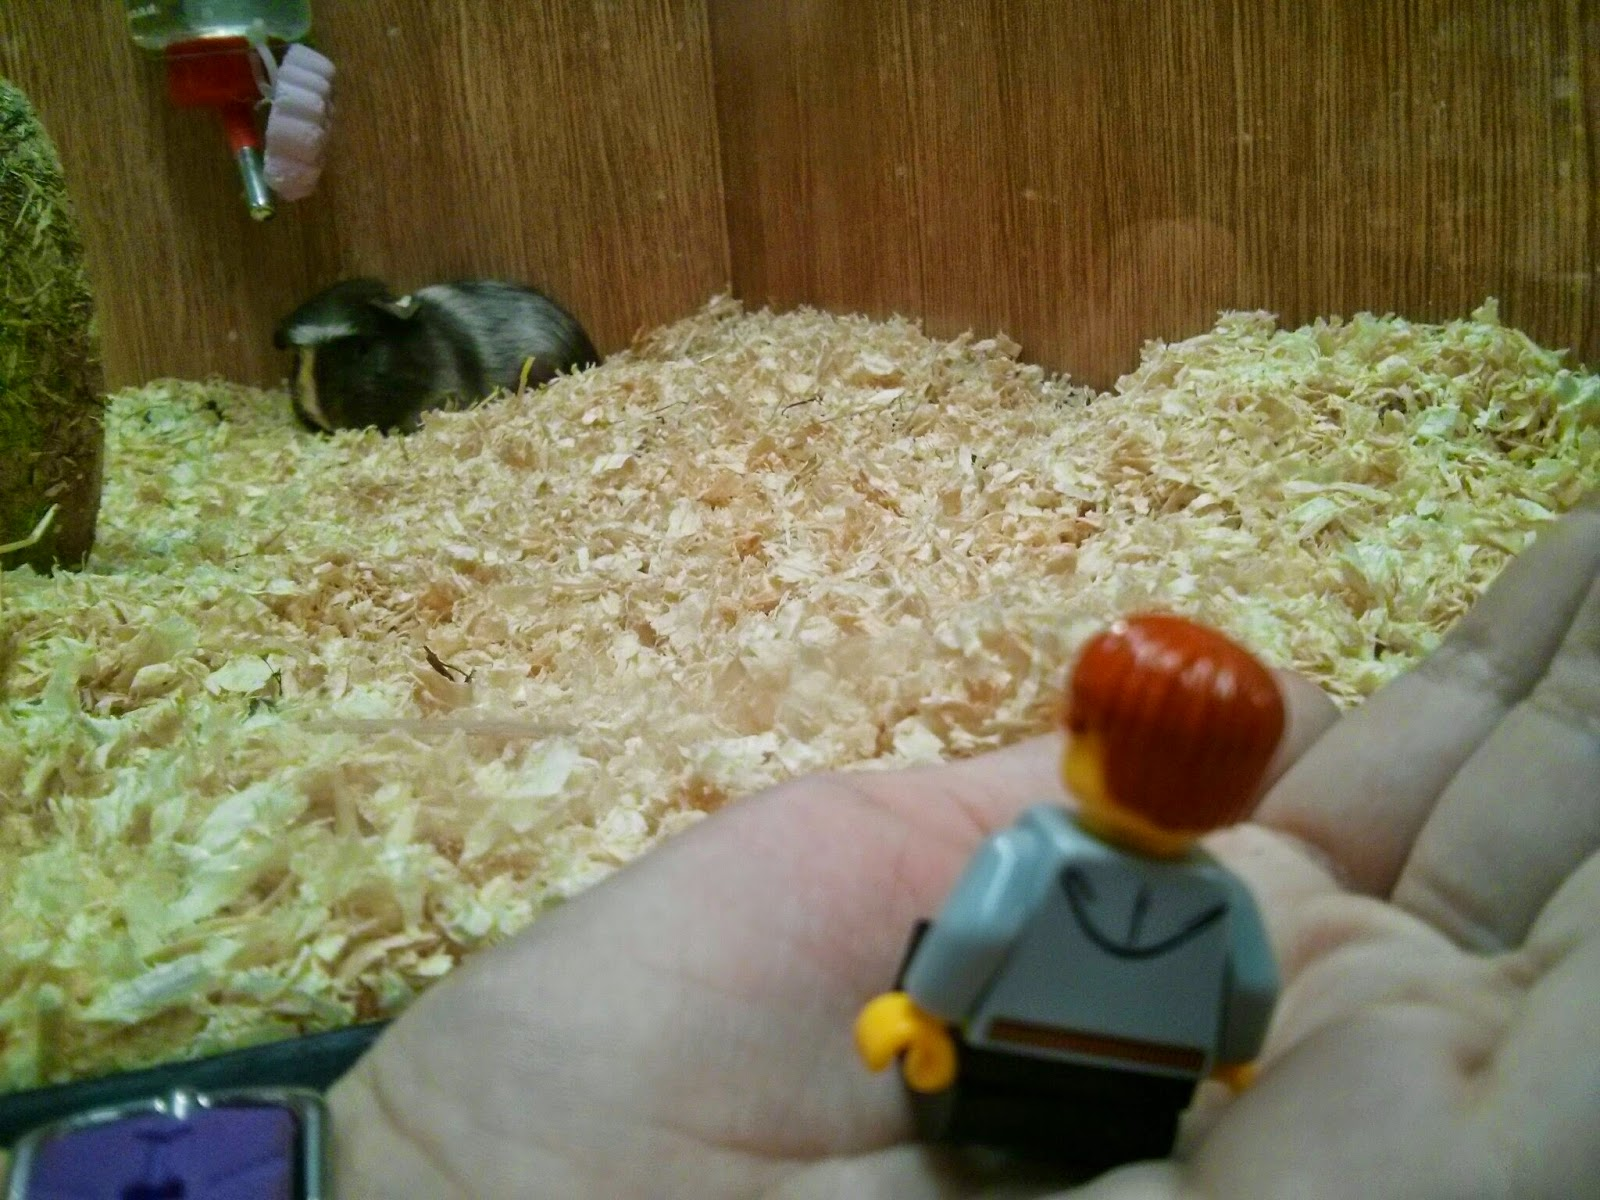 Kyle Emmett looking at Guinea Pigs